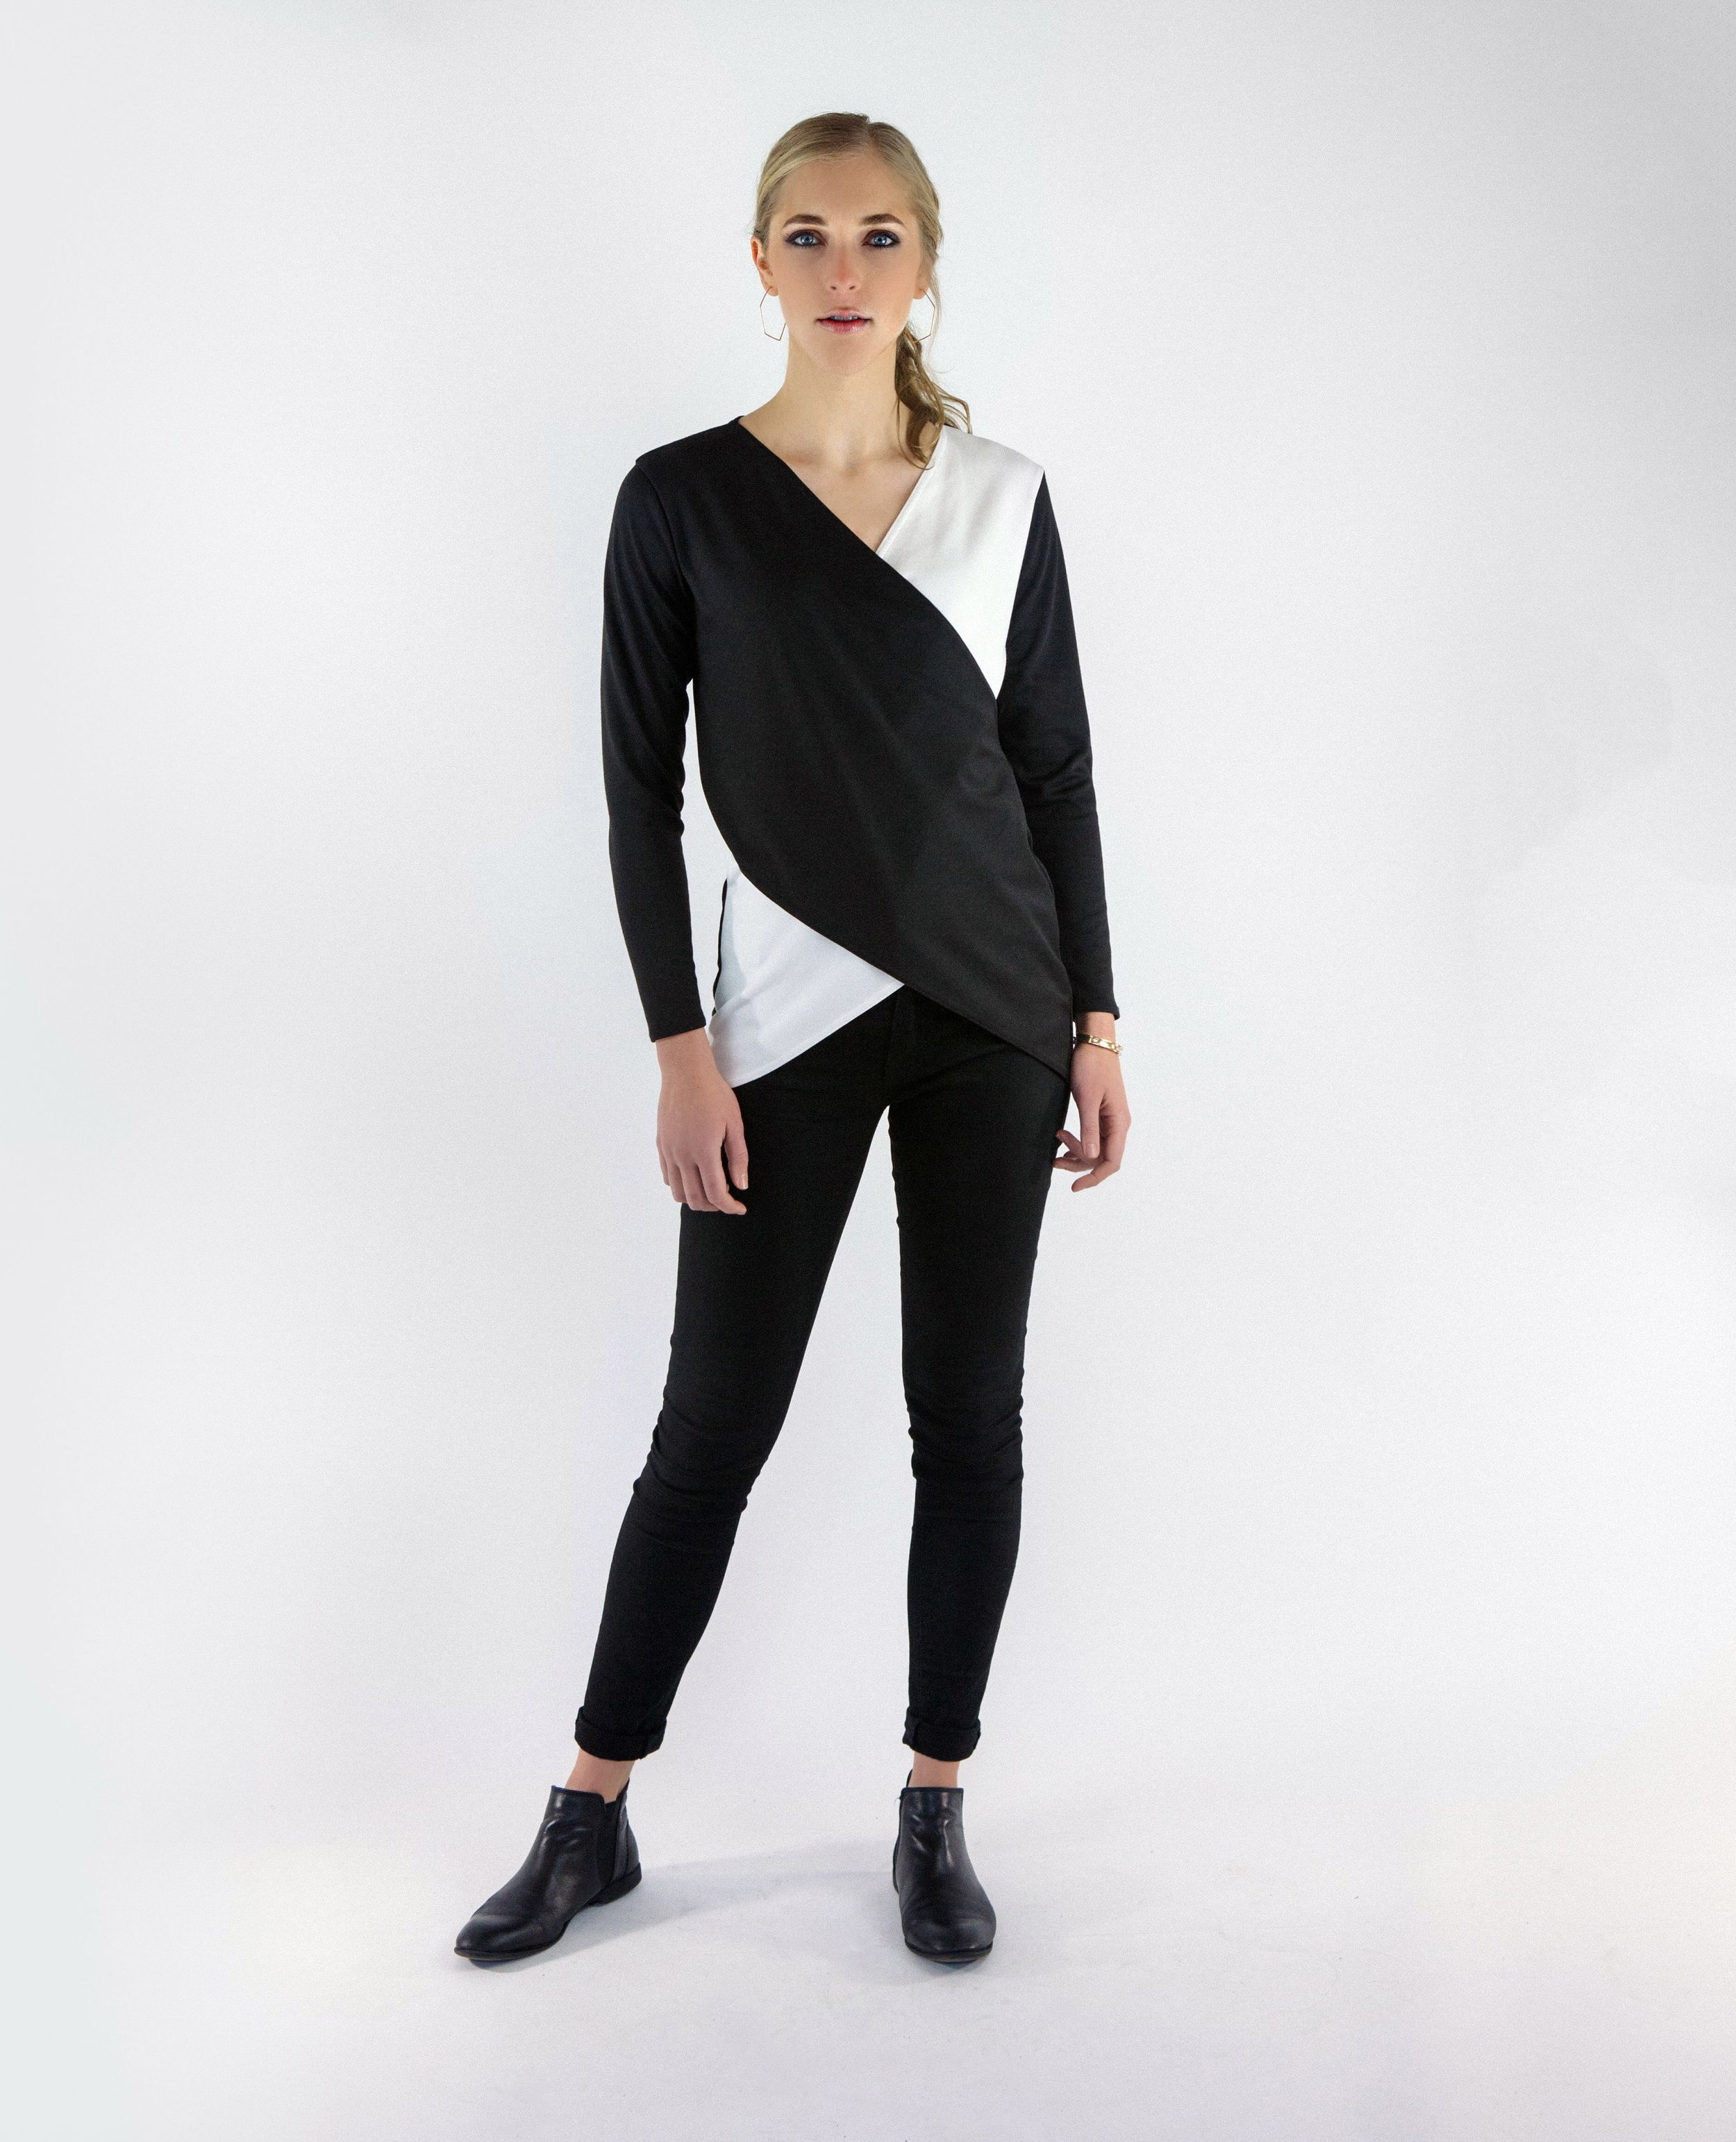 """Criss-crossed front panels in a comfy stretch knit create thismodern tunic  top.Pairs perfectly with your favorite leggings or jeans, or dress it up  for a night out. Get thissophisticated look with Machine's signature  edge.      * Rayon/Nylon/Spandex blend.     * Machine wash cold,gentle cycle.Tumble dry low or lay flat to dry.     * Model is 5'9"""" and wearing a small.     * Made in Portland, Oregon.  View size chart."""